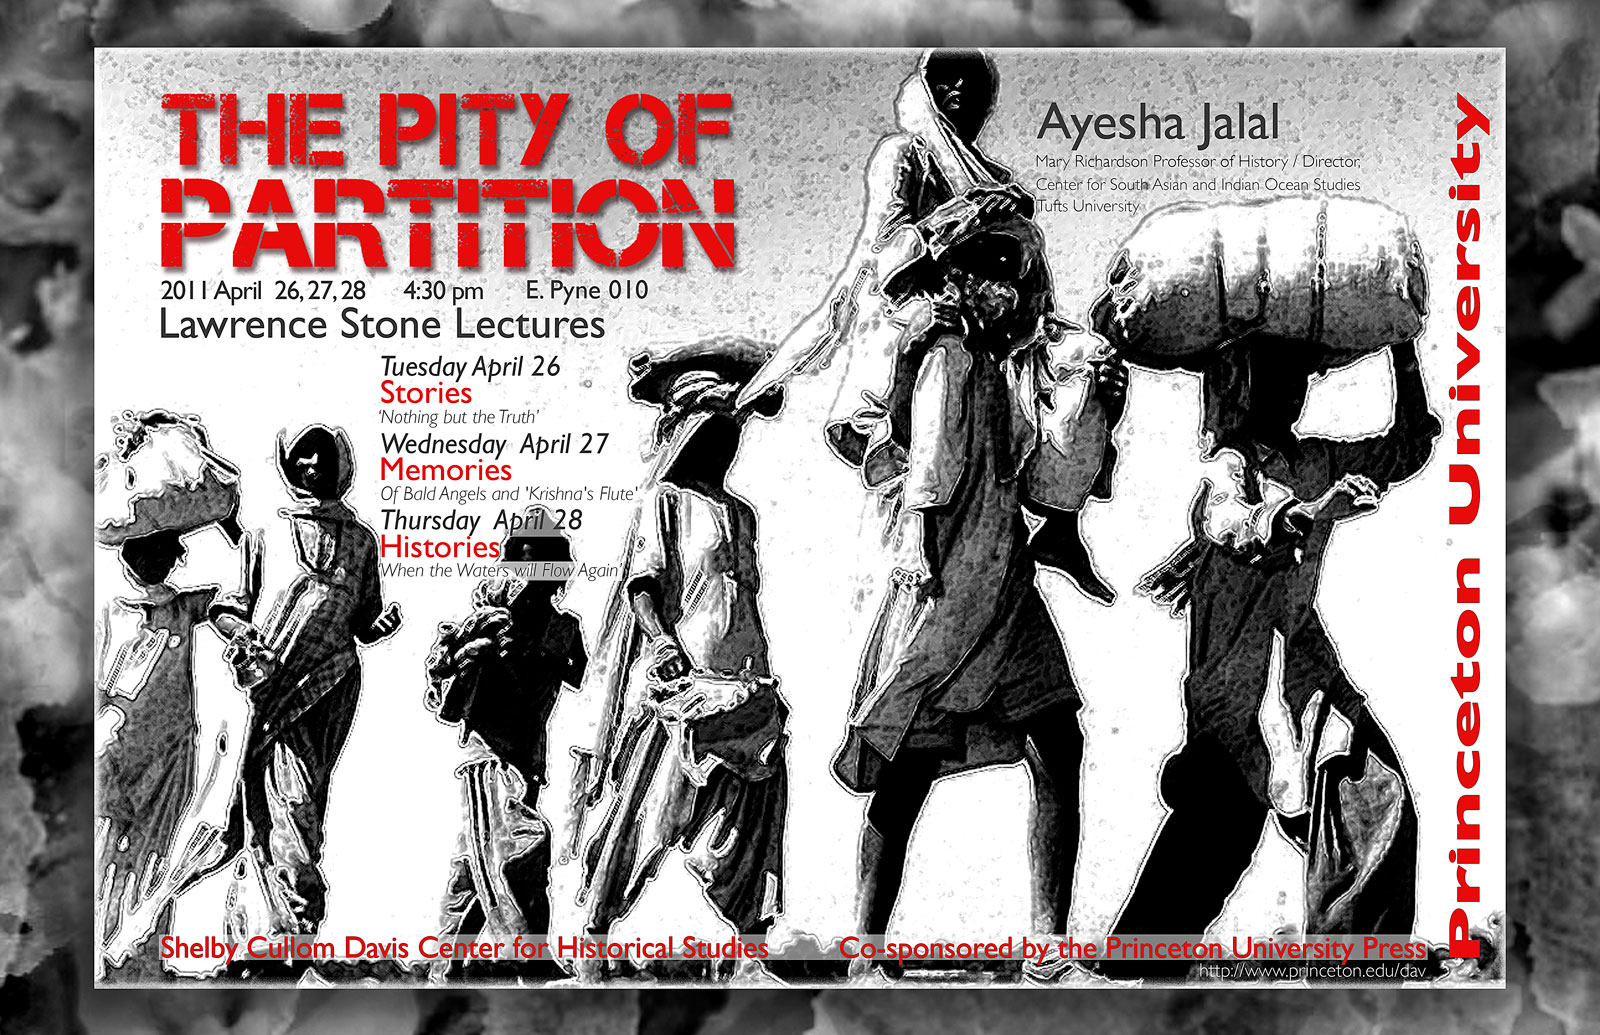 The Pity of Partition event poster